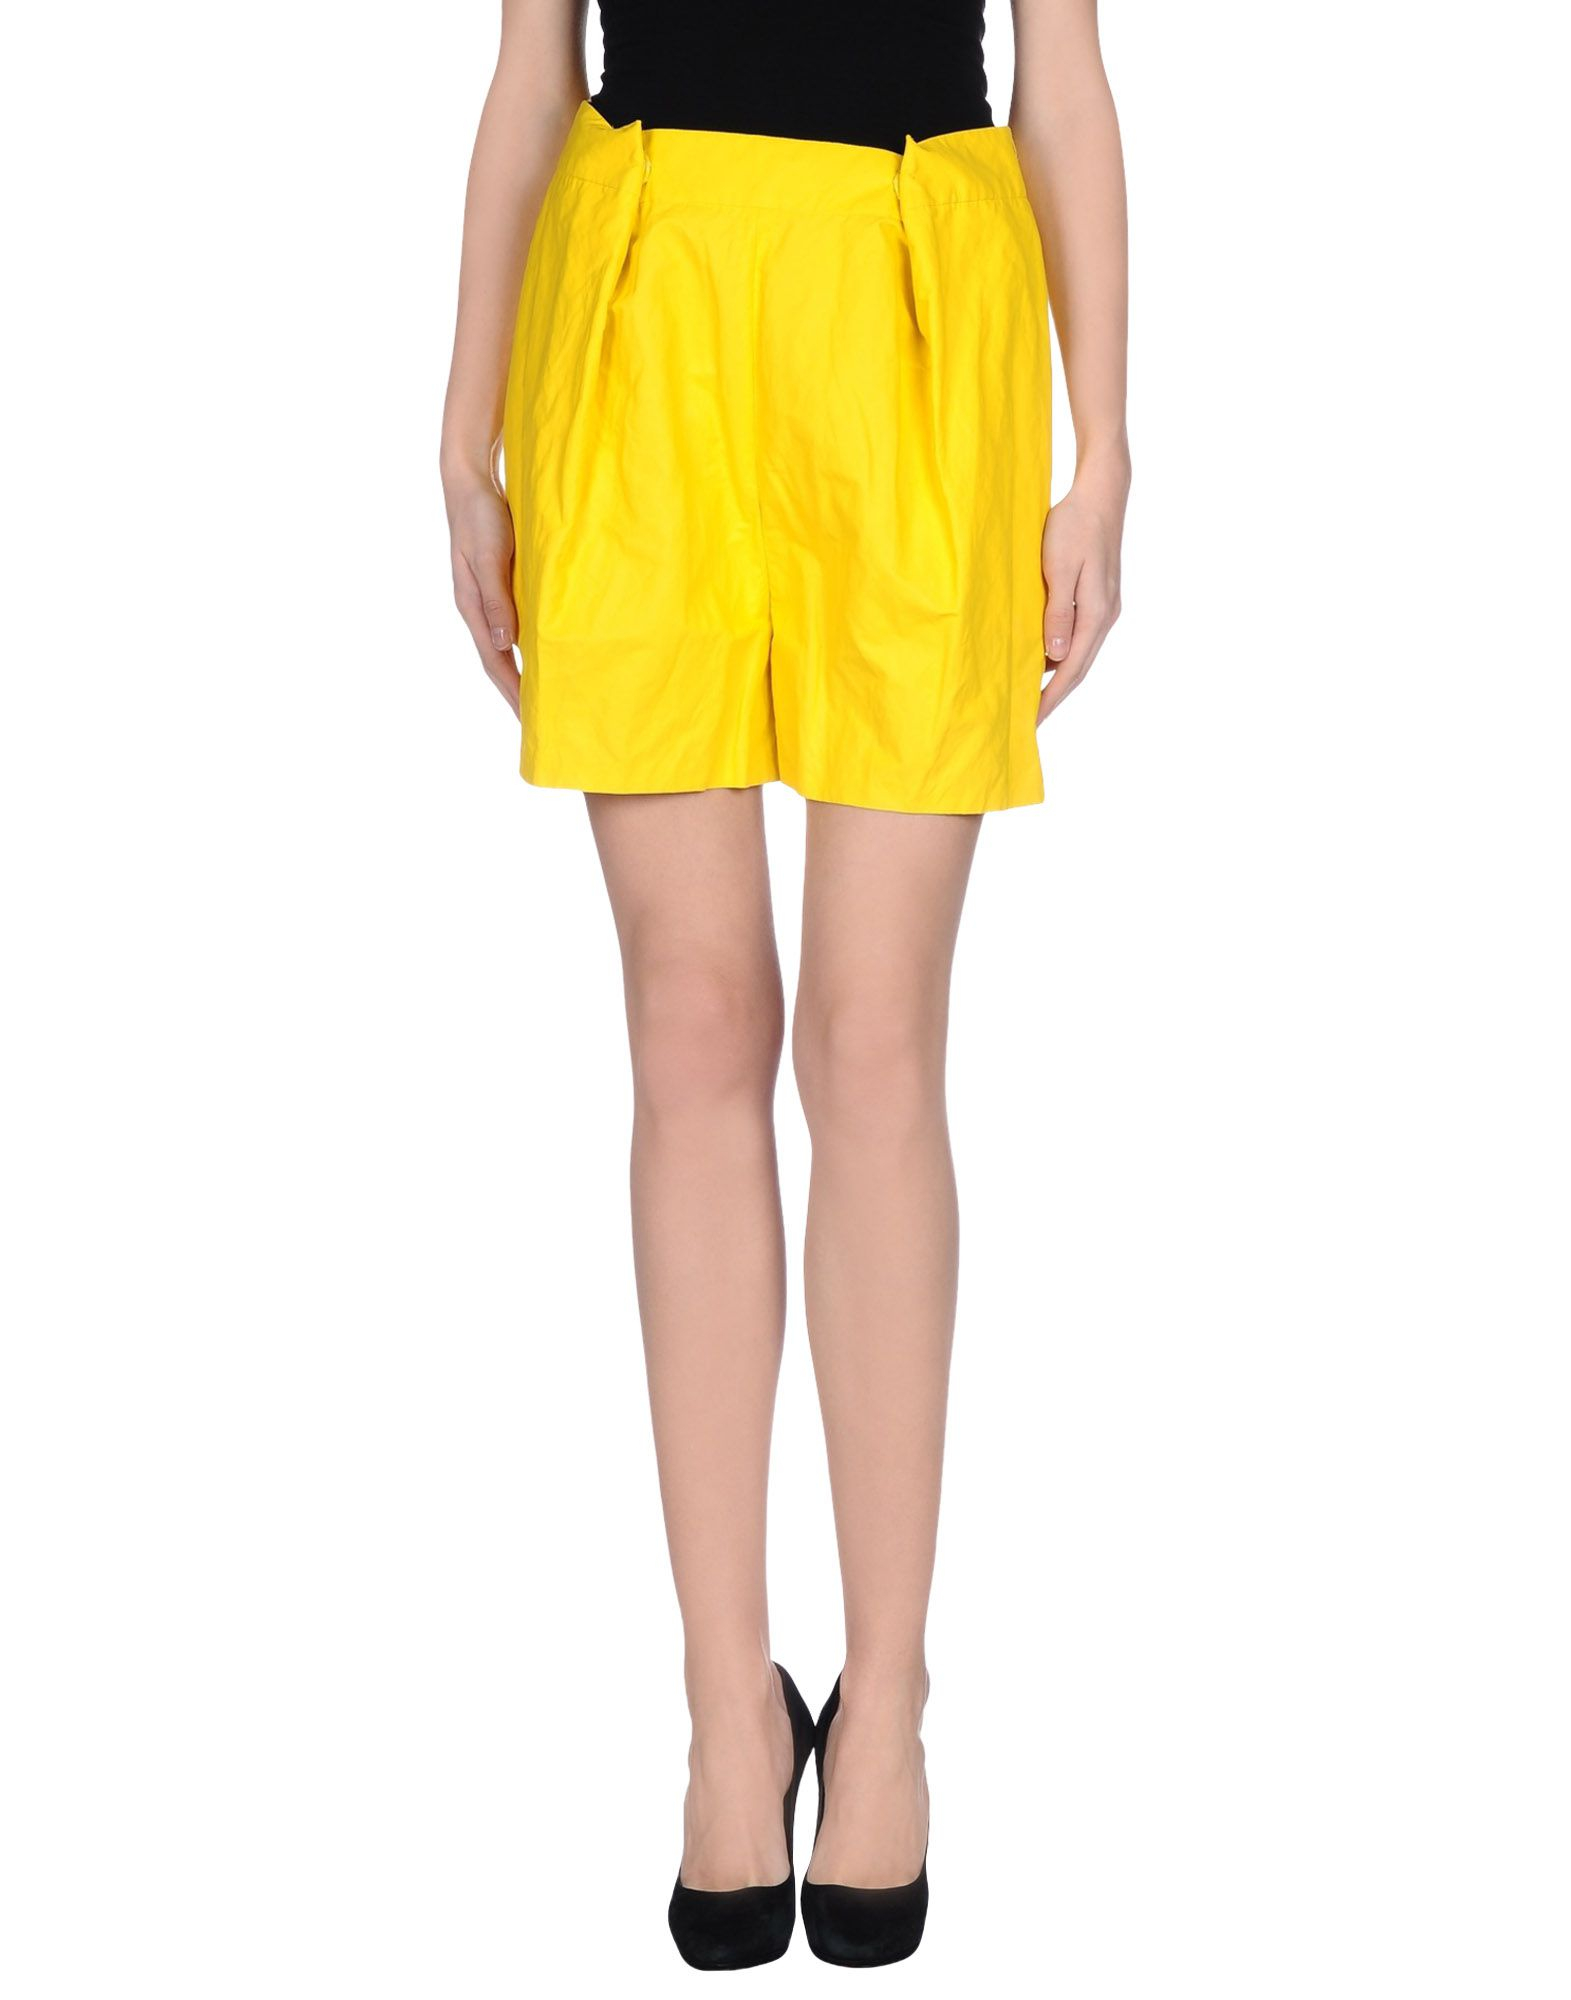 acne knee length skirt in yellow save 48 lyst